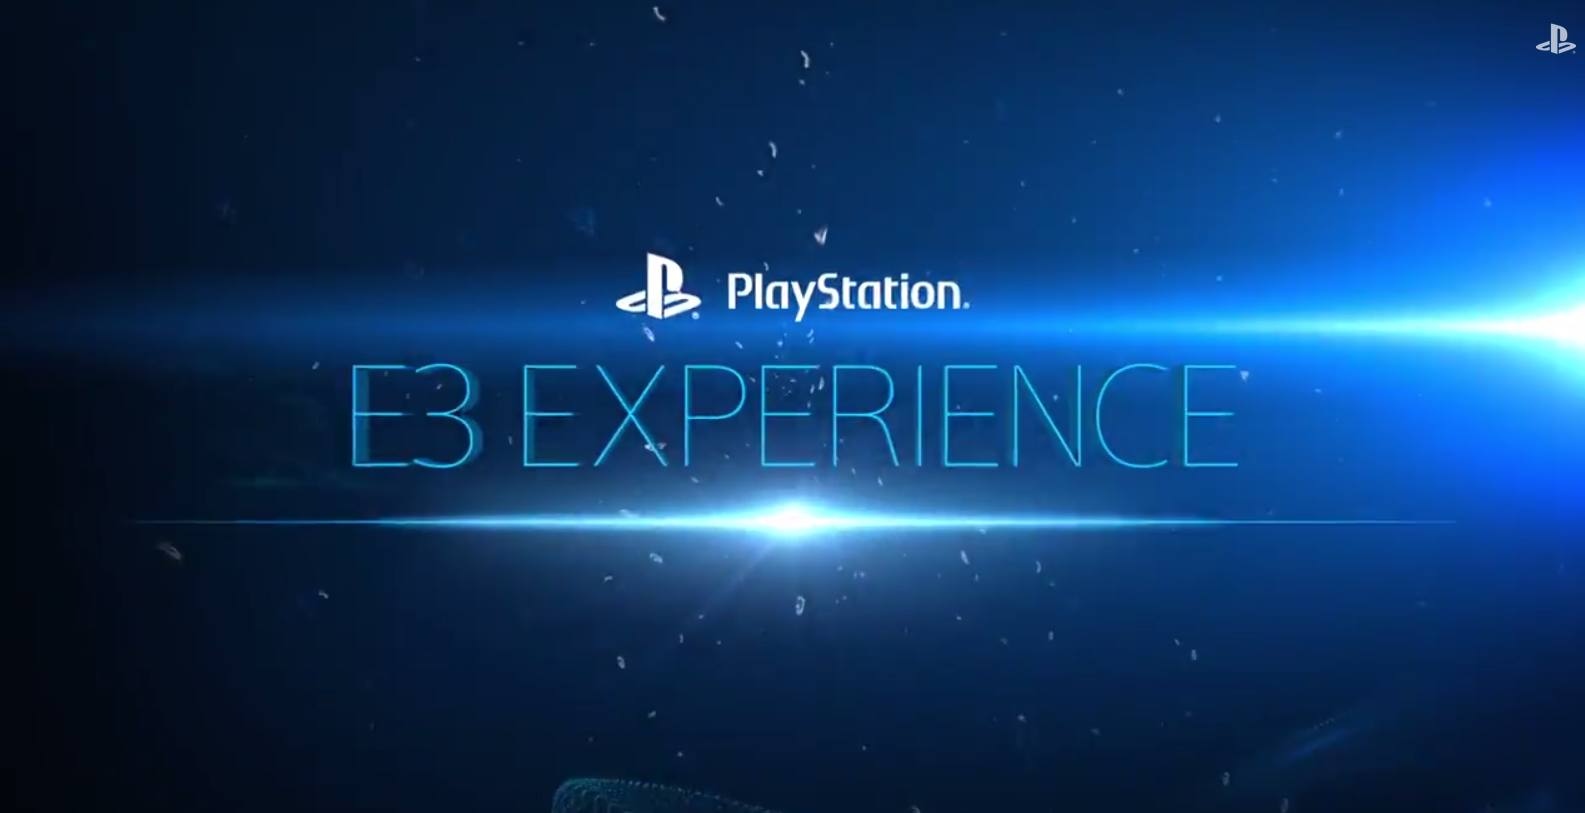 playstation experience electronic arts